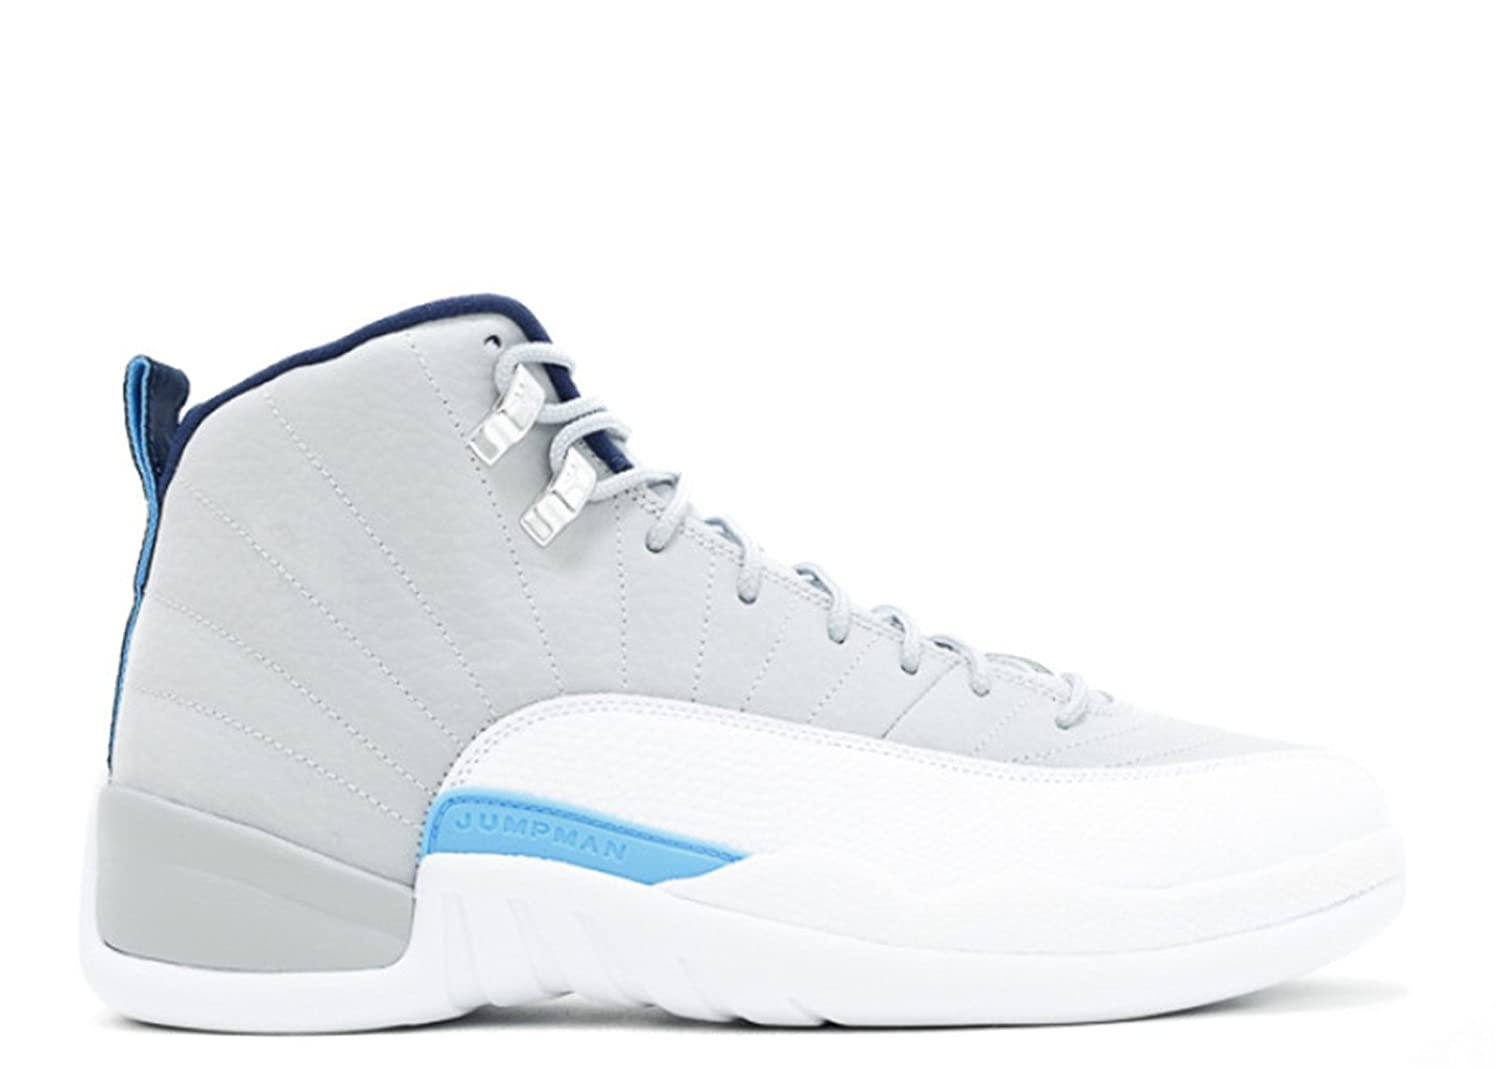 2017 Nike AIR JORDAN 12 RETRO UNC Wolf Grey University Blue-White-Midnight Mens Basketball Shoe